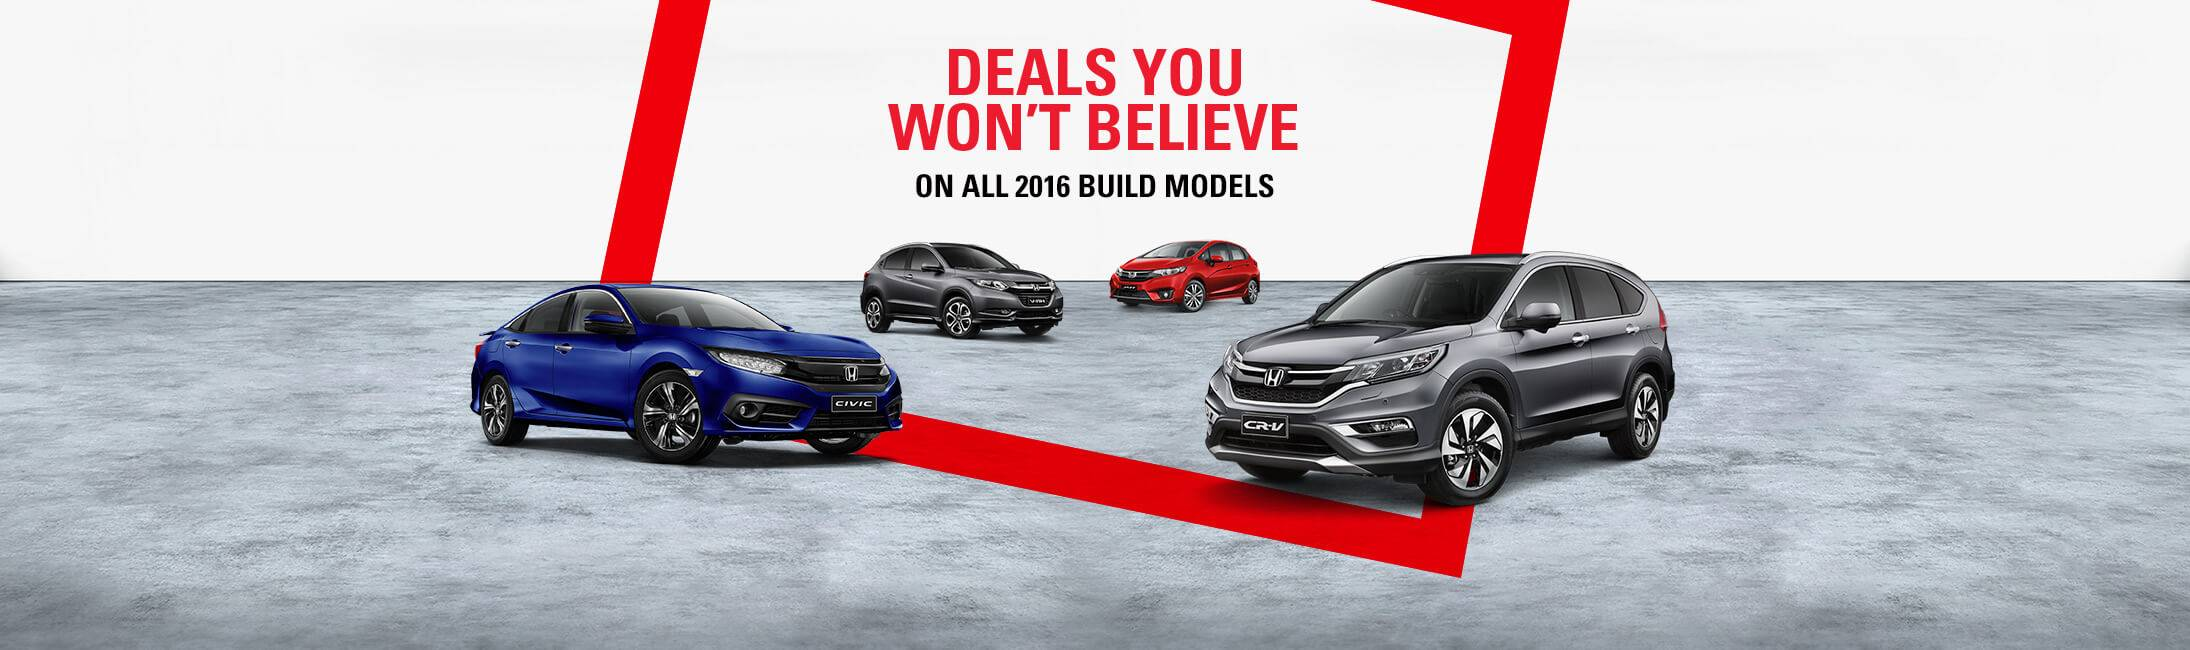 Honda Deals You Wont Believe